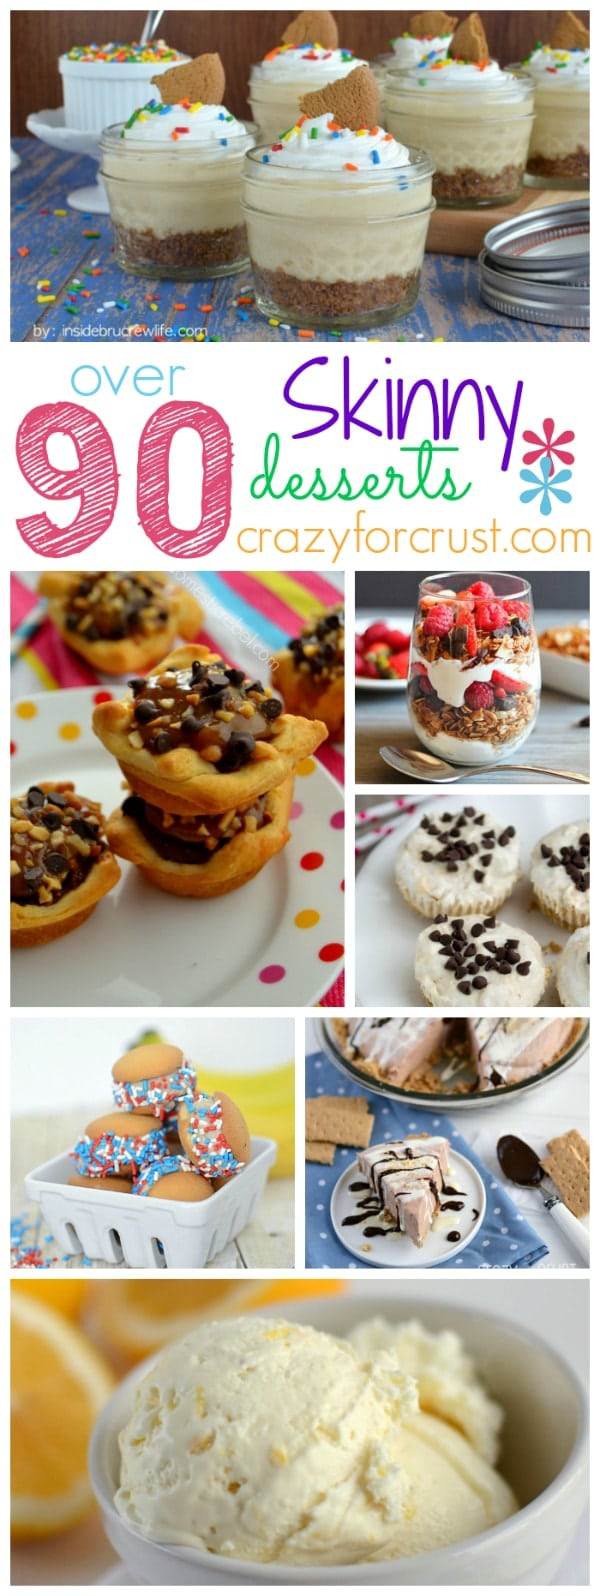 Over 90 Skinny Desserts at crazyforcrust.com